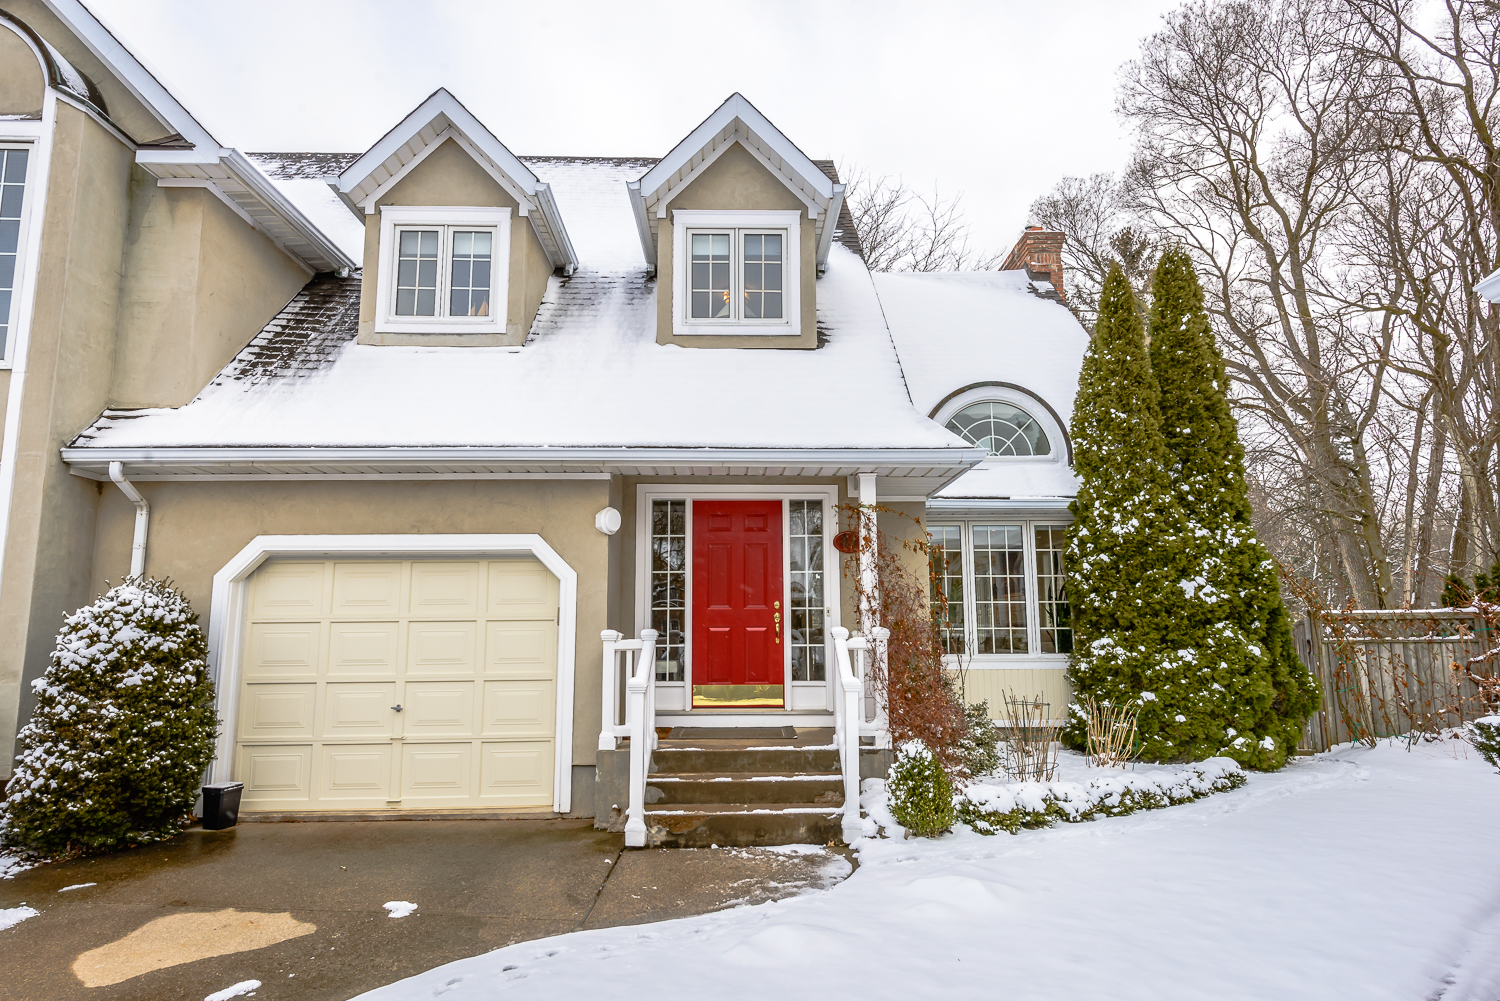 Property image for 44 Weatherstone Court, Niagara-on-the-Lake